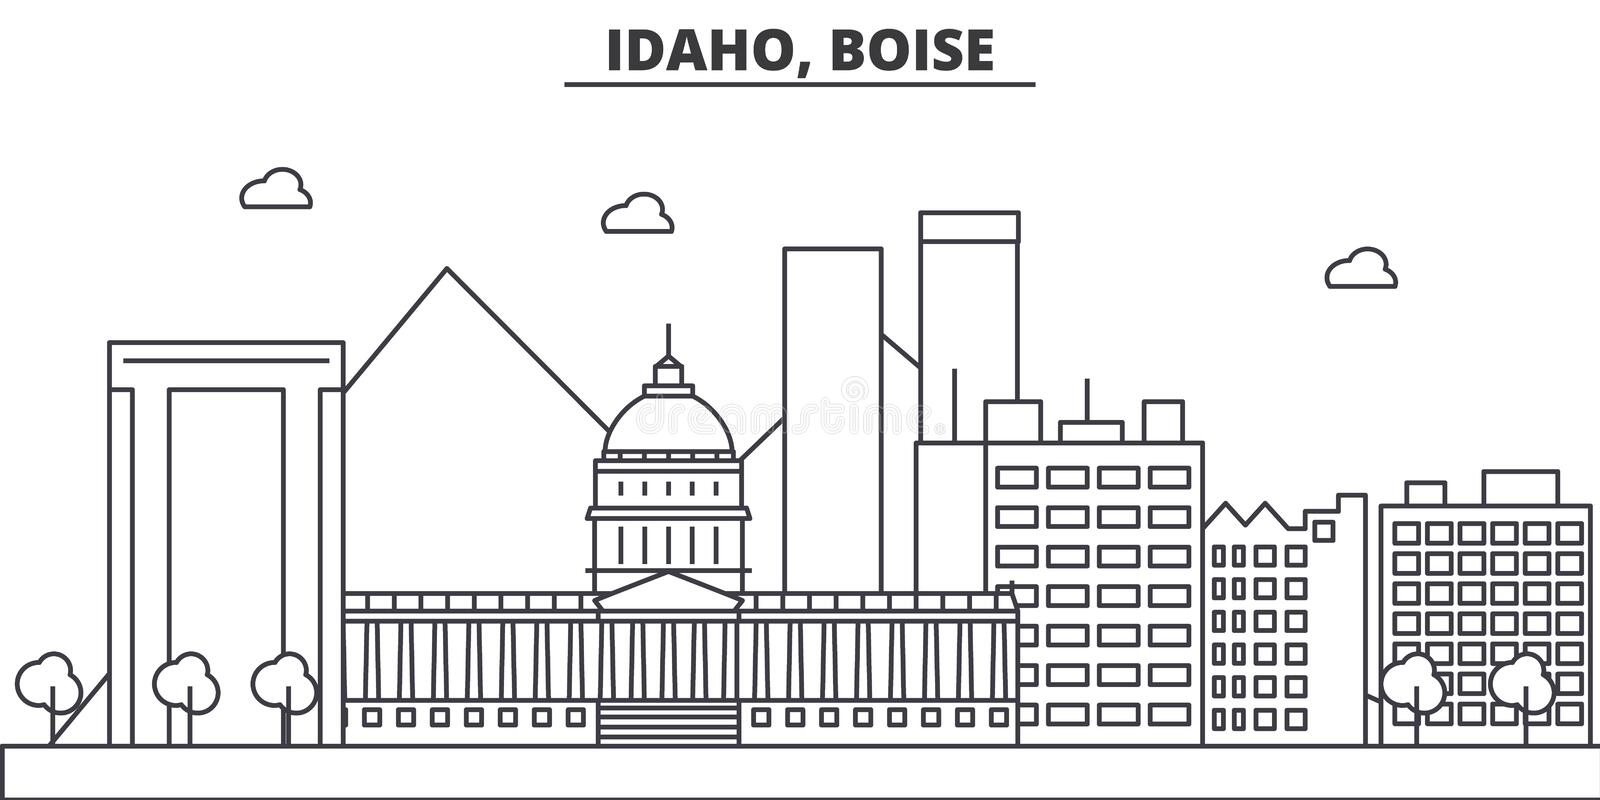 Idaho boise architecture line skyline illustration for Architects in boise idaho